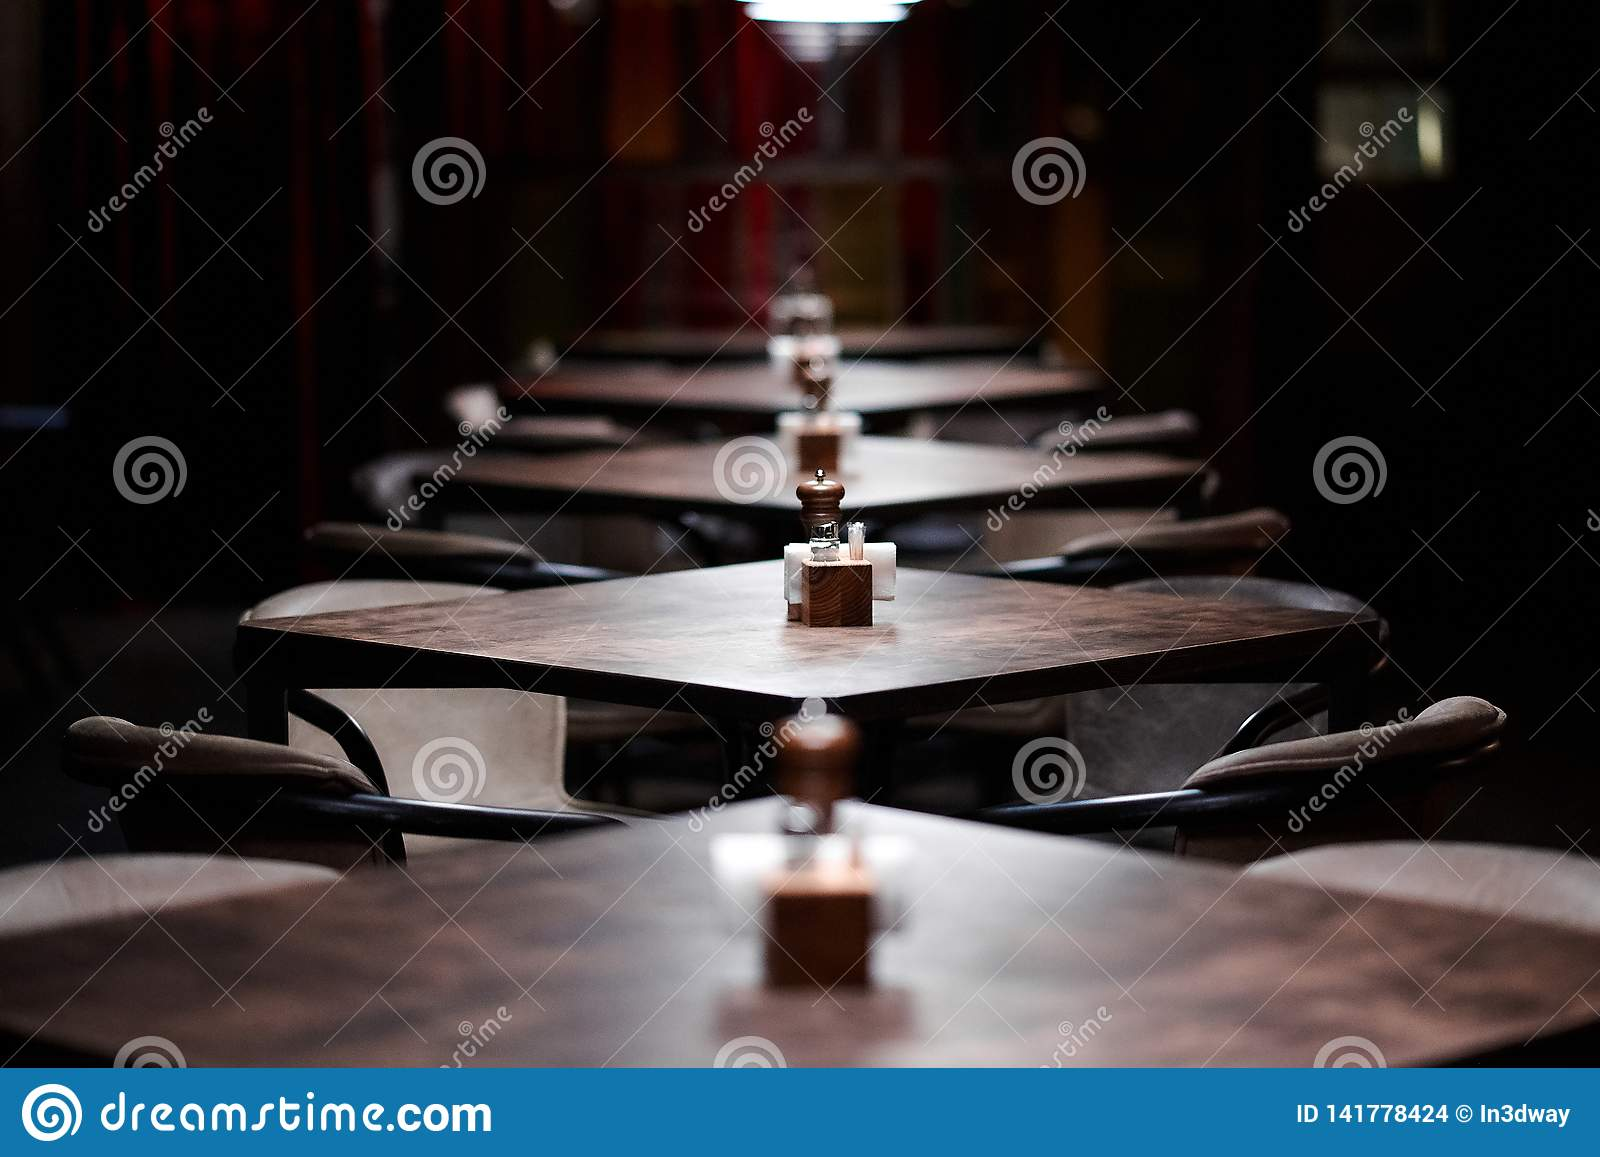 Bar wooden tables in a row, with pepper, salt shaker, toothpicks, wipes